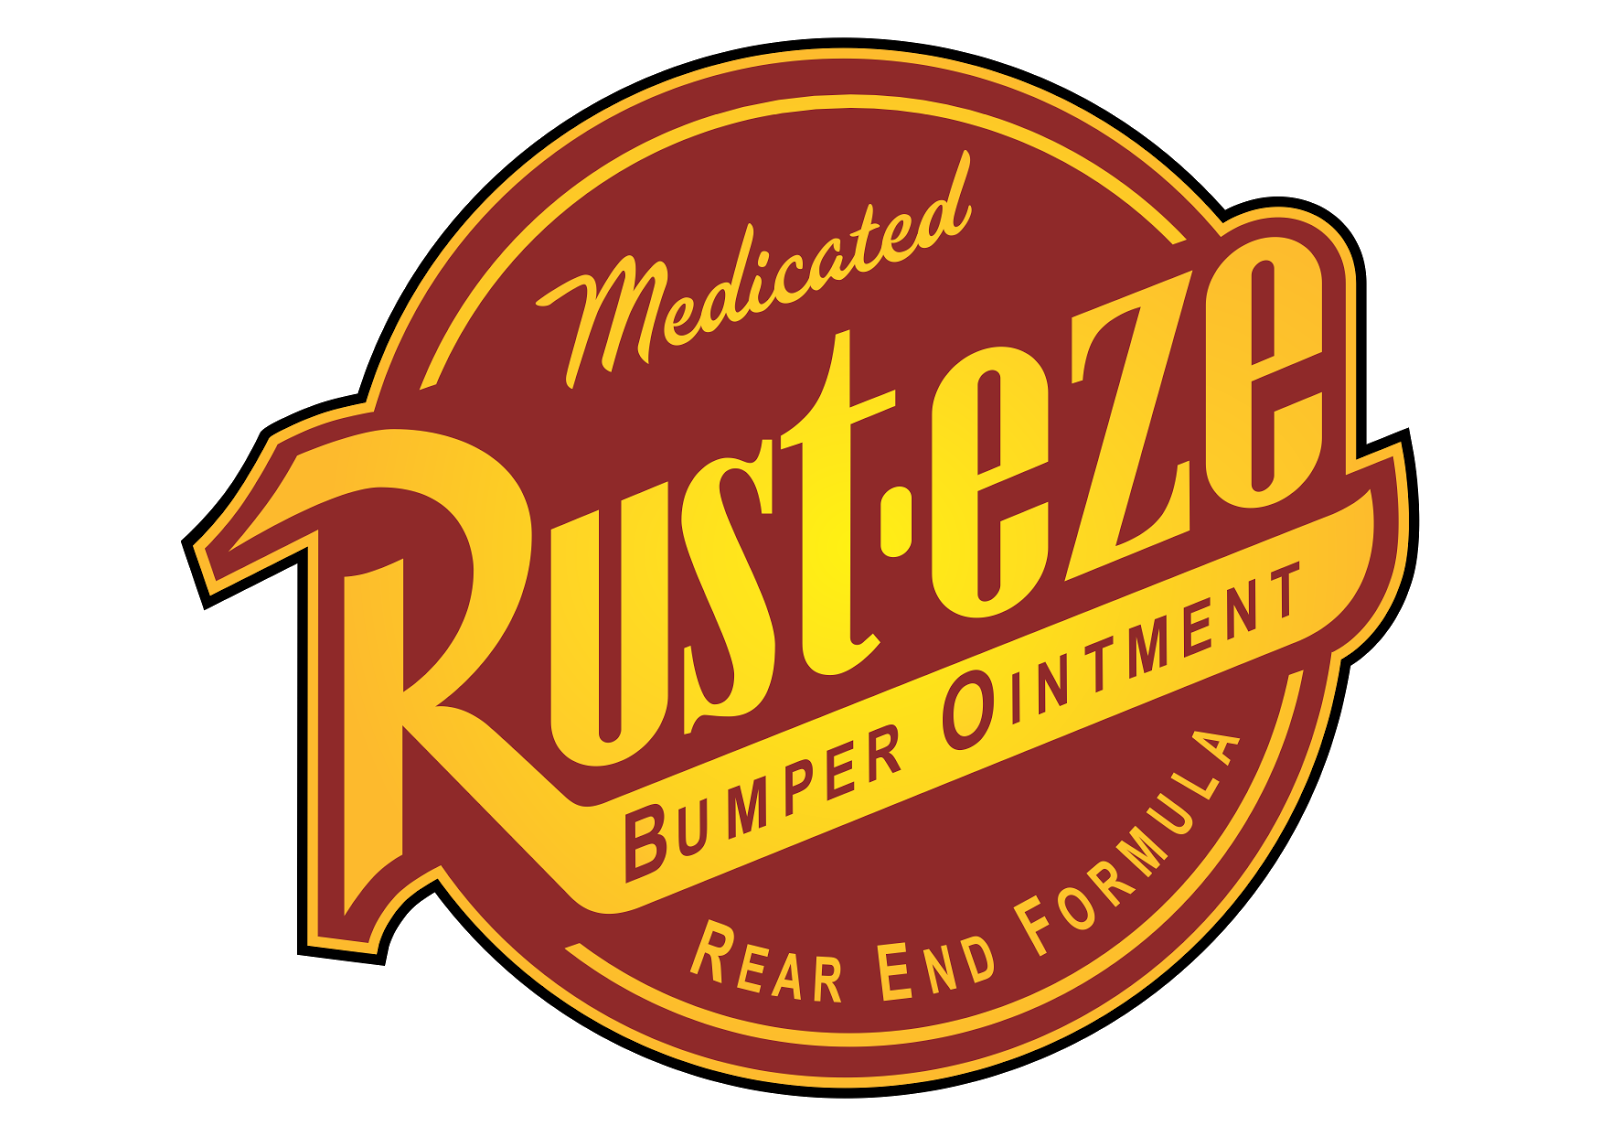 rust eze world of cars wiki fandom powered by wikia rh worldofcarsdrivein wikia com rusteze logo cars 95 disney 20 95 rust-eze logo vector free